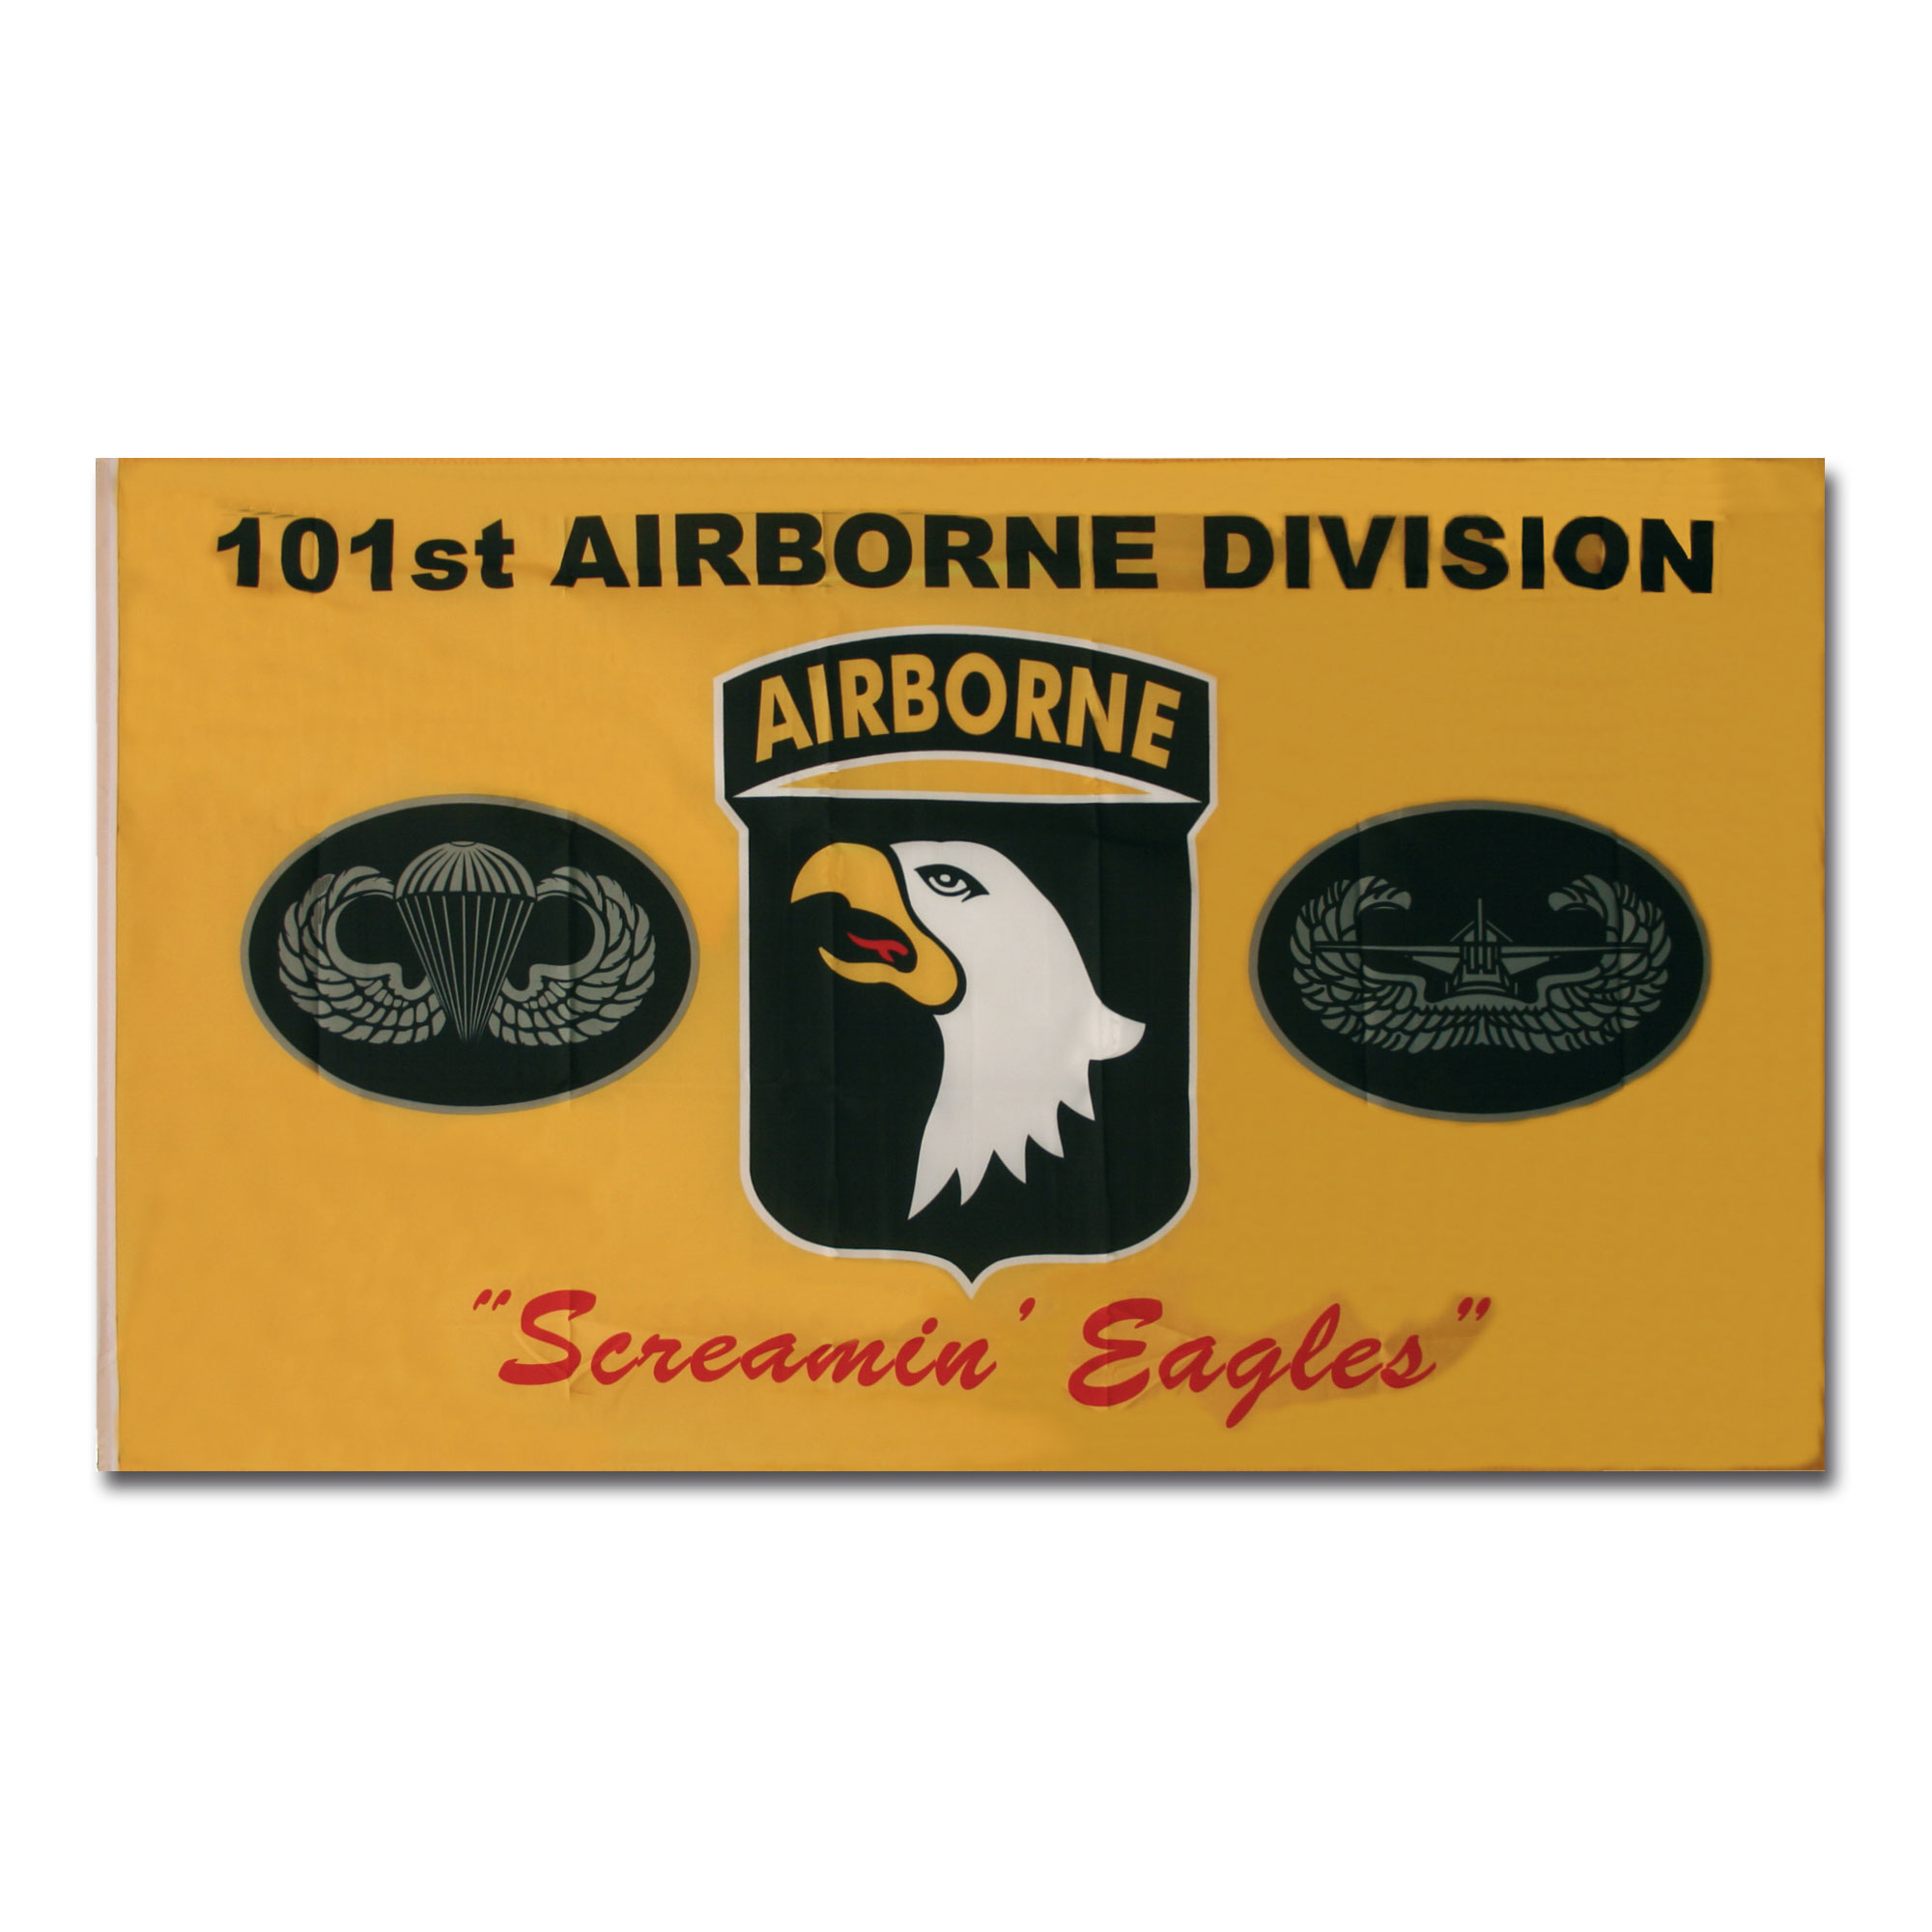 Flagge 101st Airborne